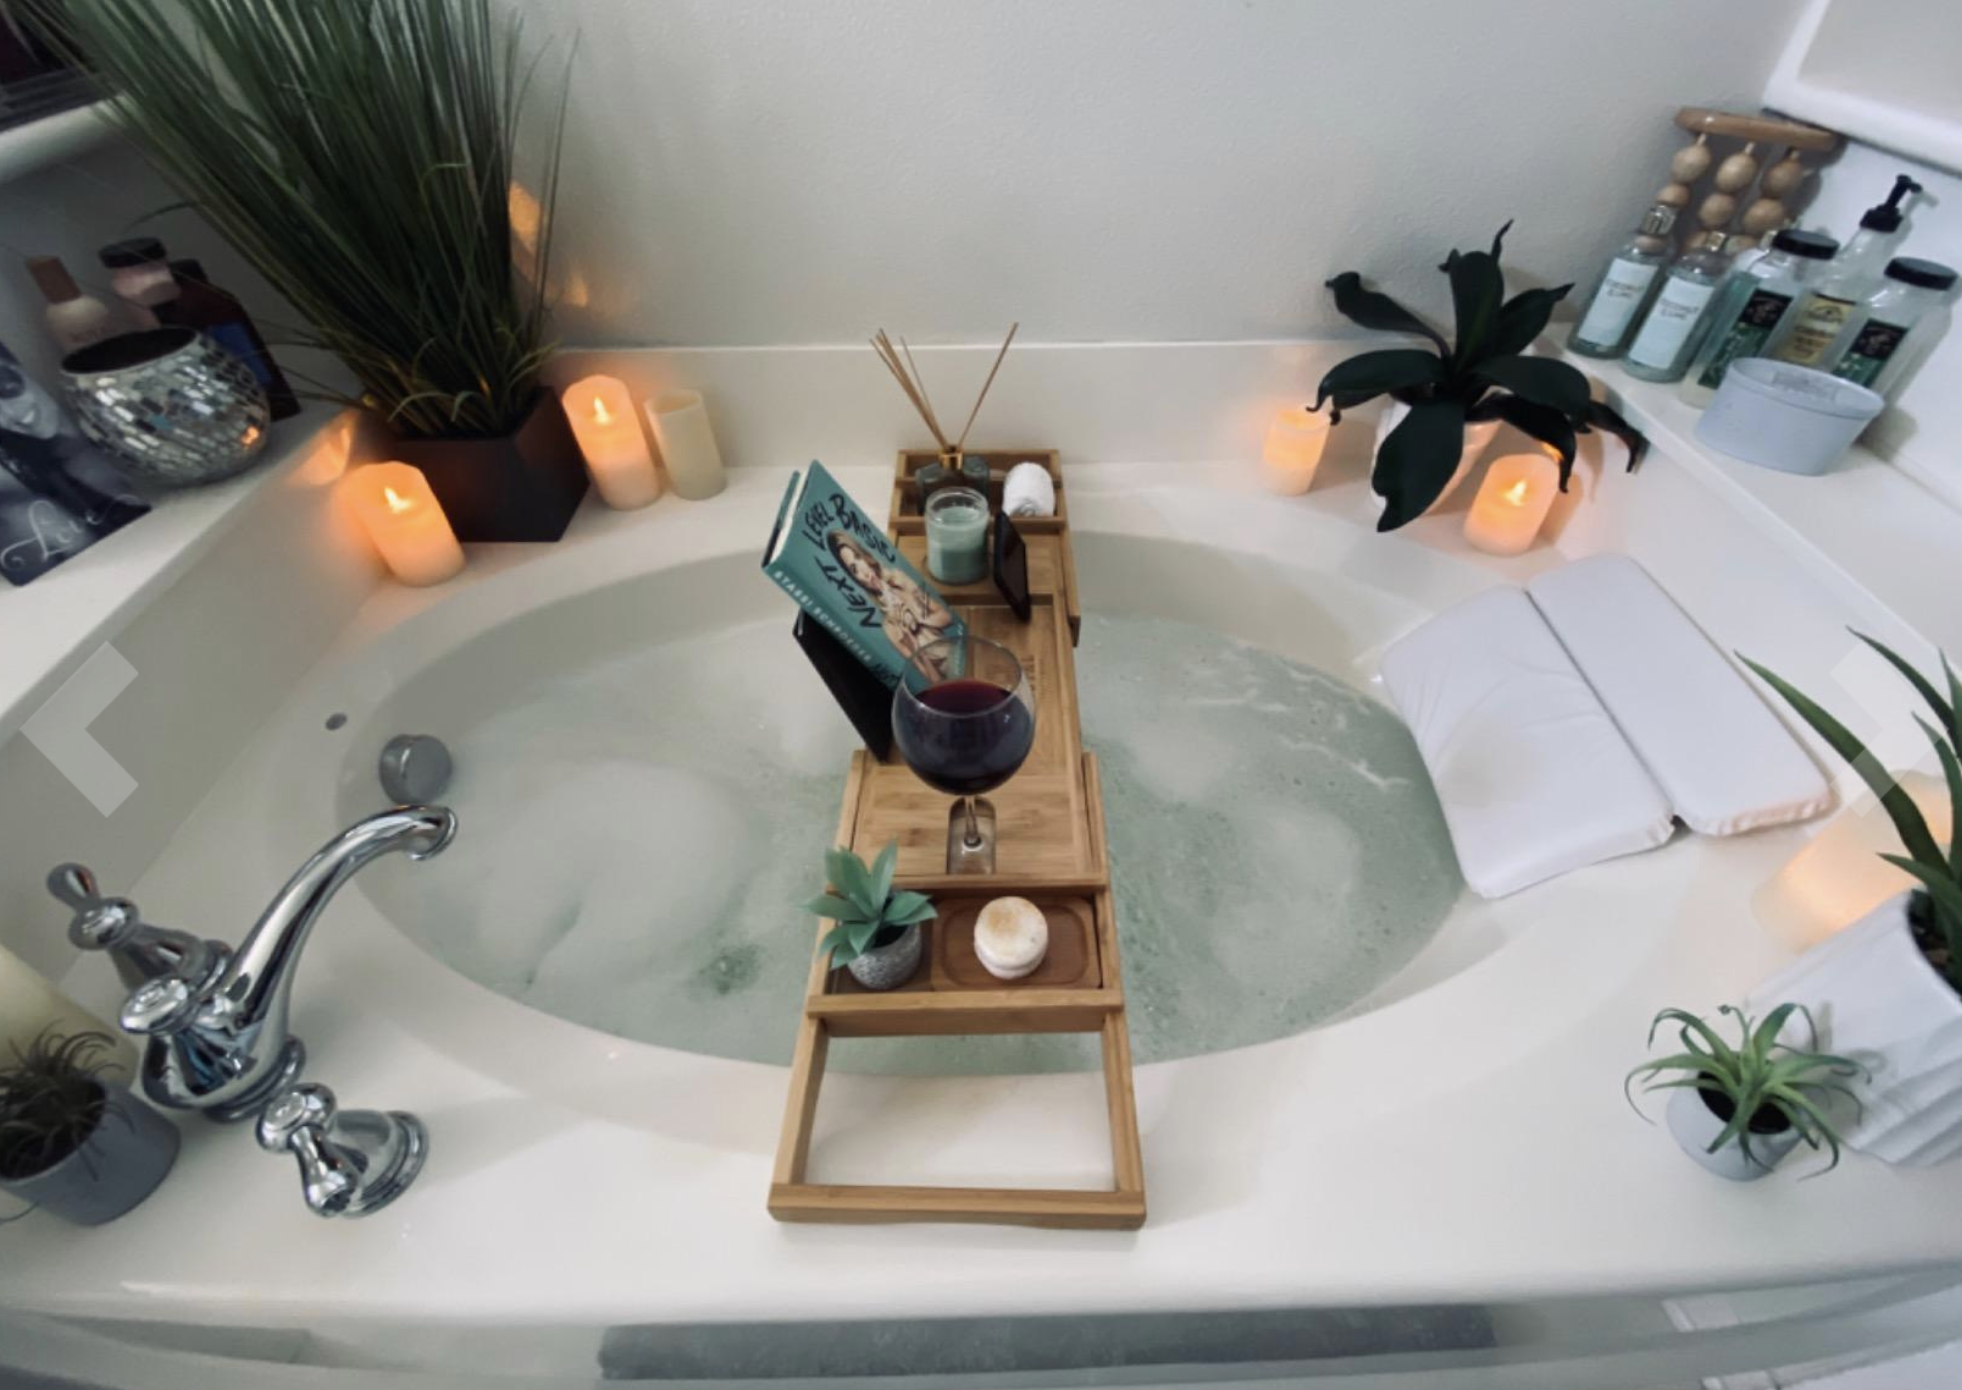 Reviewer image of the tray laid across a large jacuzzi with wine, plants, and a book set up on it